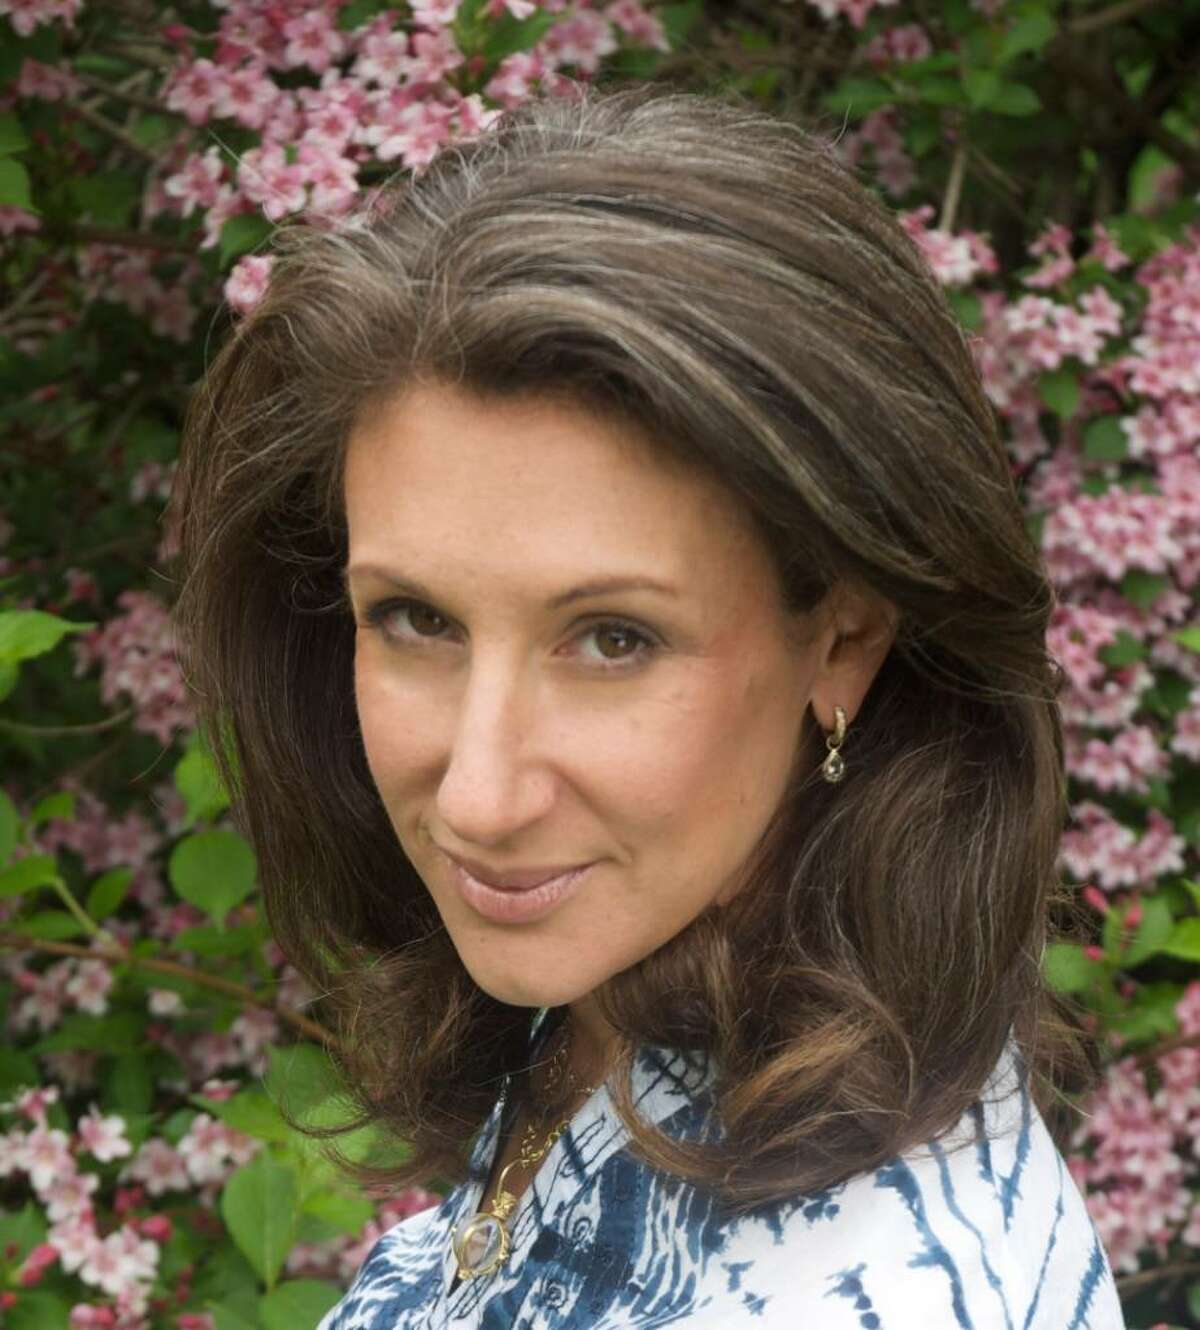 Westport author Jane Green Her latest novel, Promises to Keep, discusses the sustainability of platonic friendships, especially in the throes of dealing with a fatal illness.